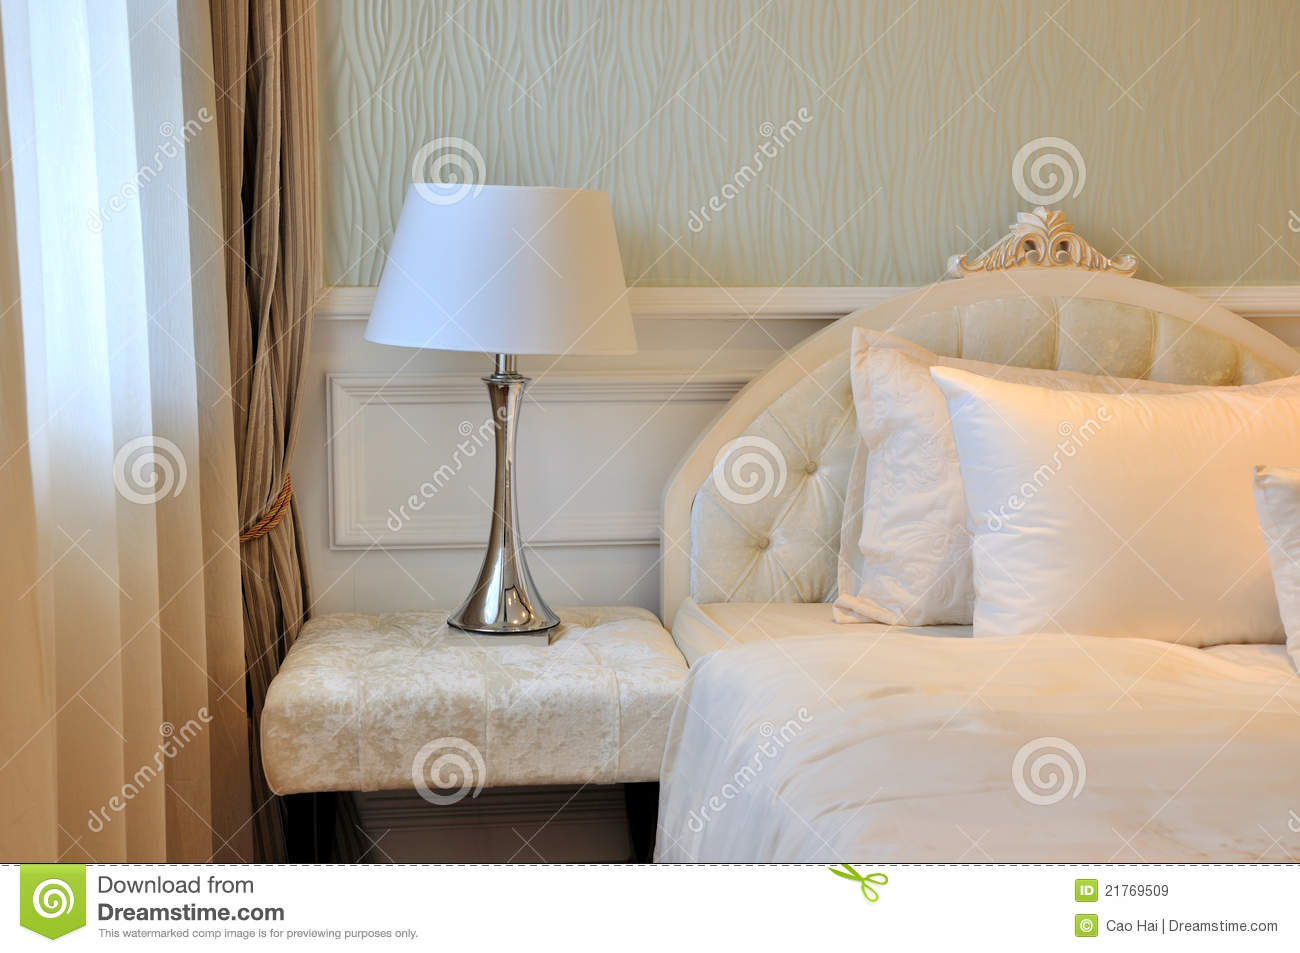 lighting and soft bedroom interior royalty free stock